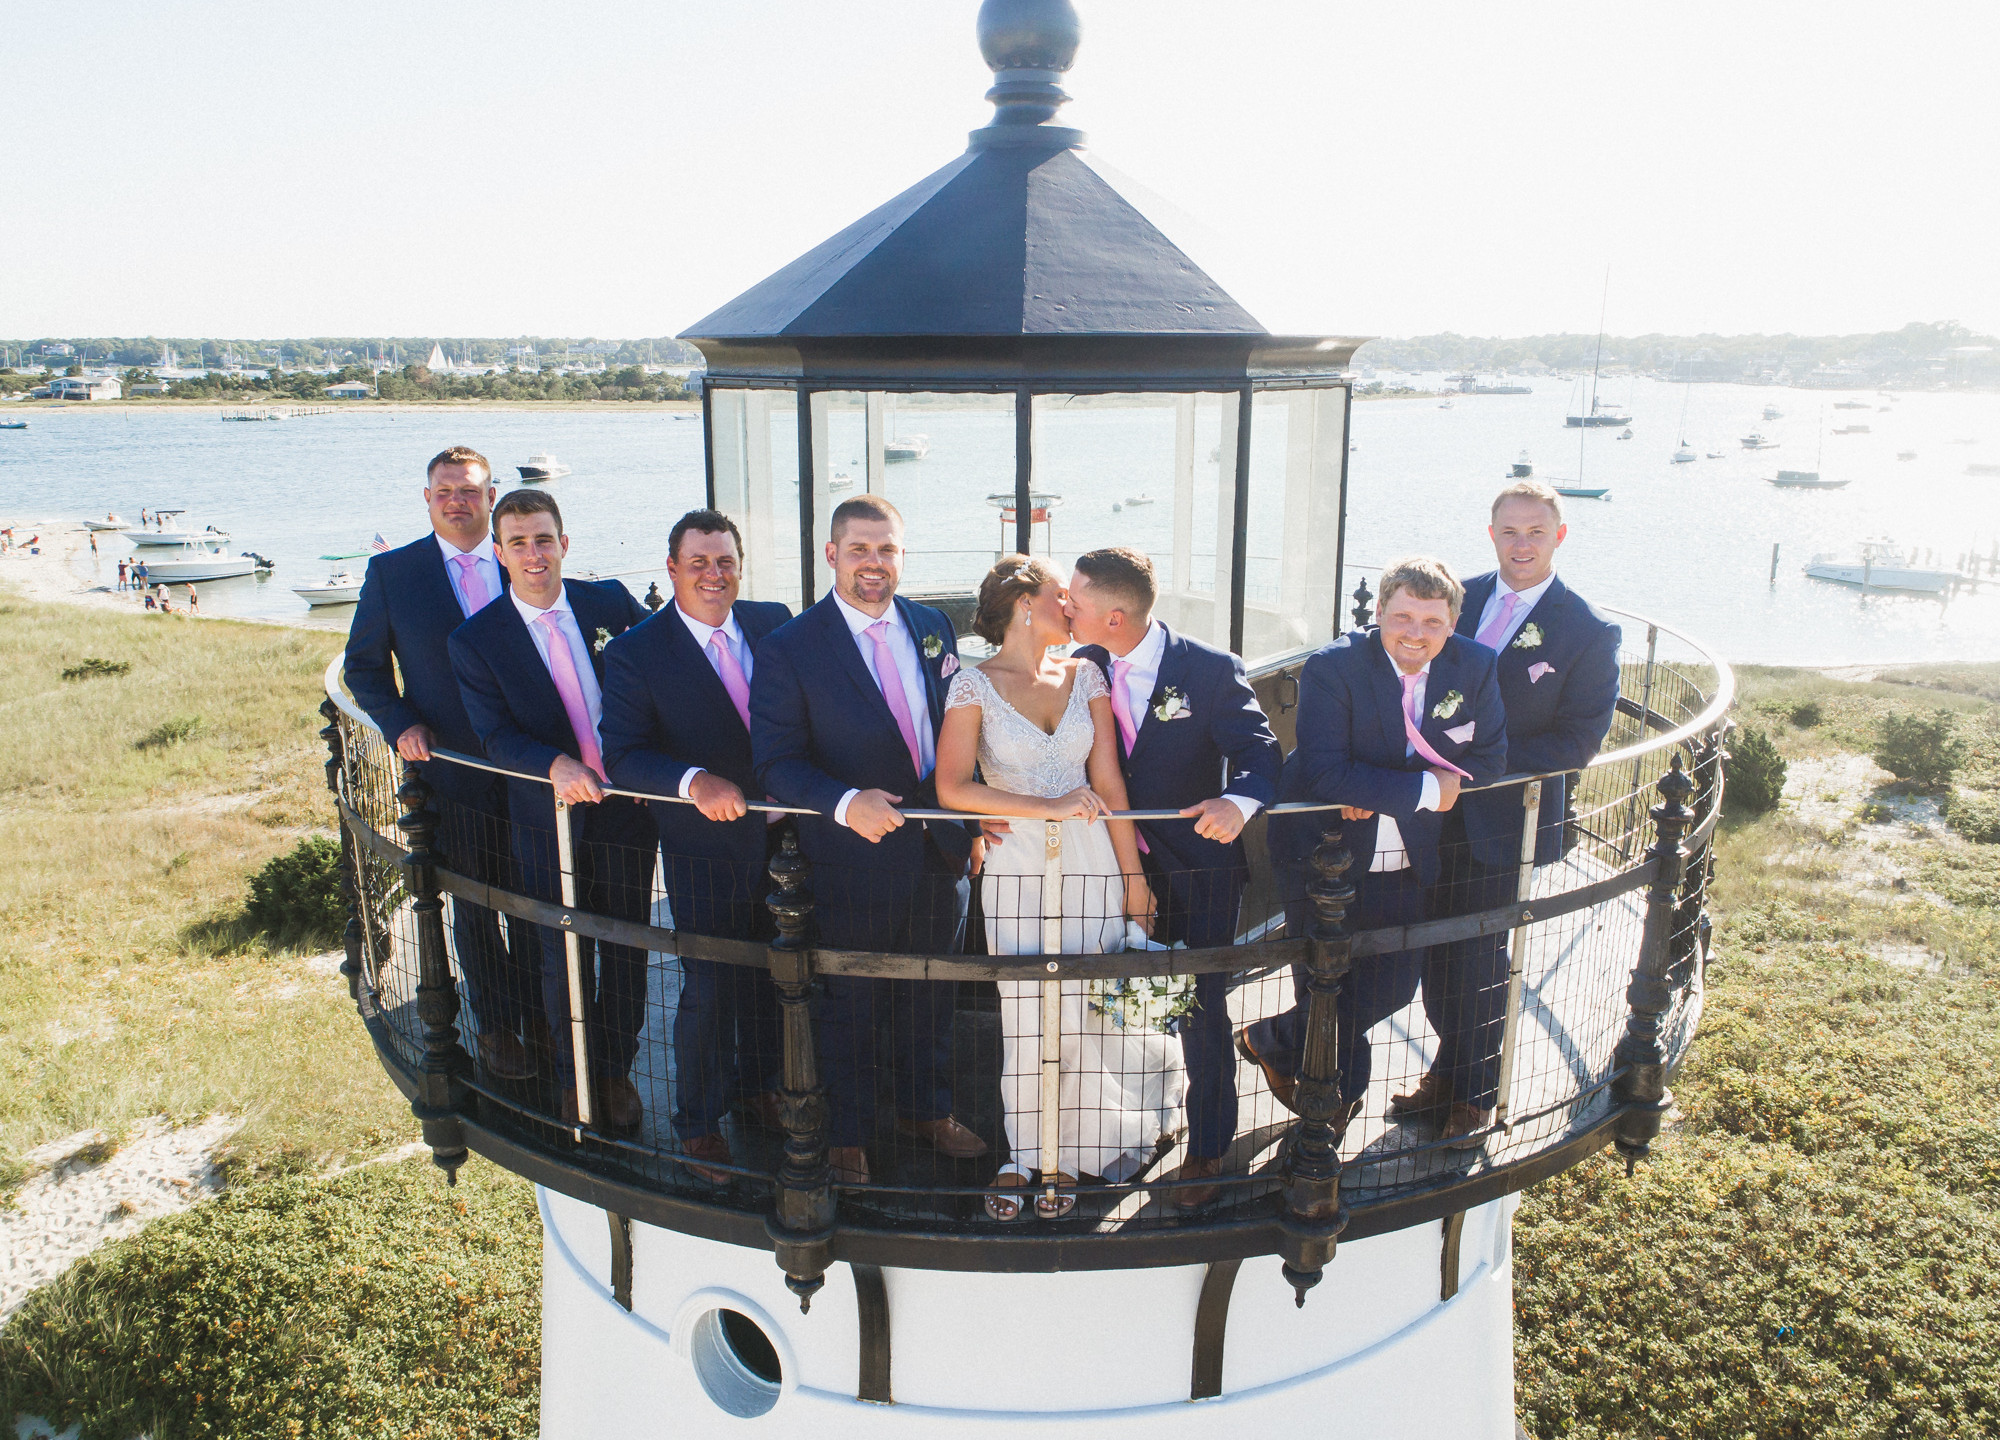 A bride and groom with his groomsmen atop the Edgartown Lighthouse photo by David Welch Photography